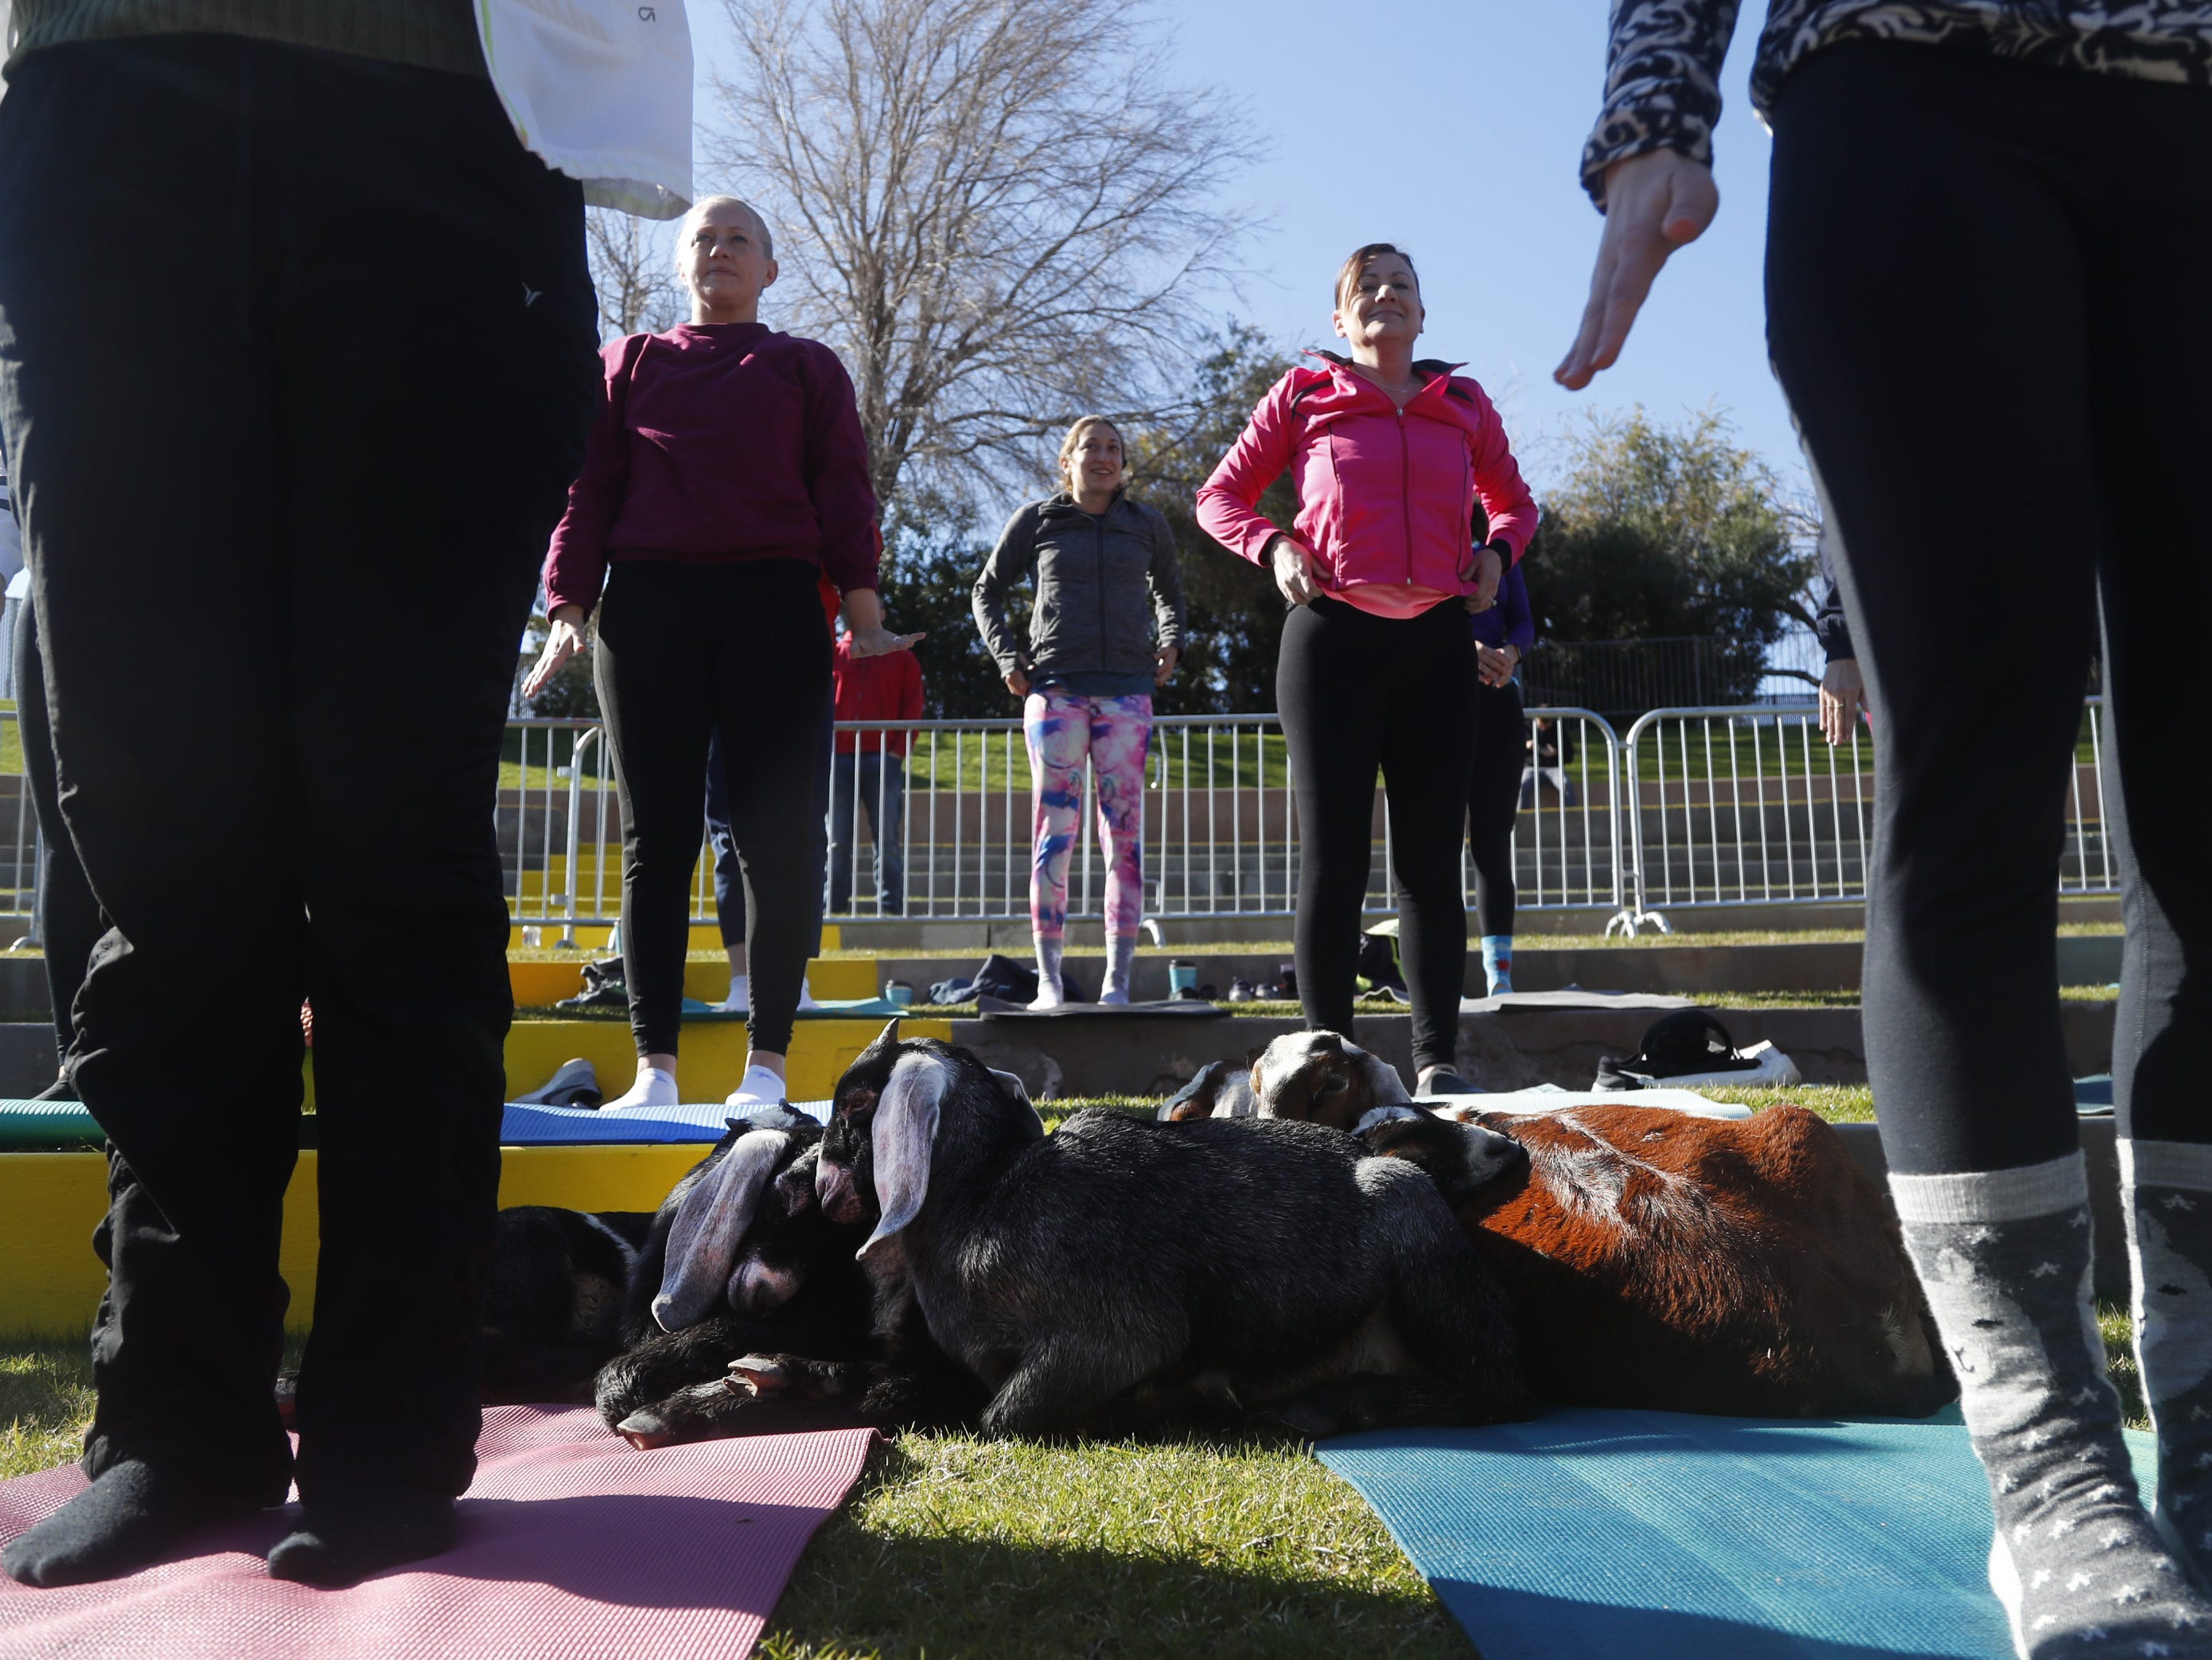 A group of tired goats find a place to rest during a Guinness World Record goat yoga attempt at the Mesa Amphitheatre in Mesa, Ariz. on Feb. 23, 2019.